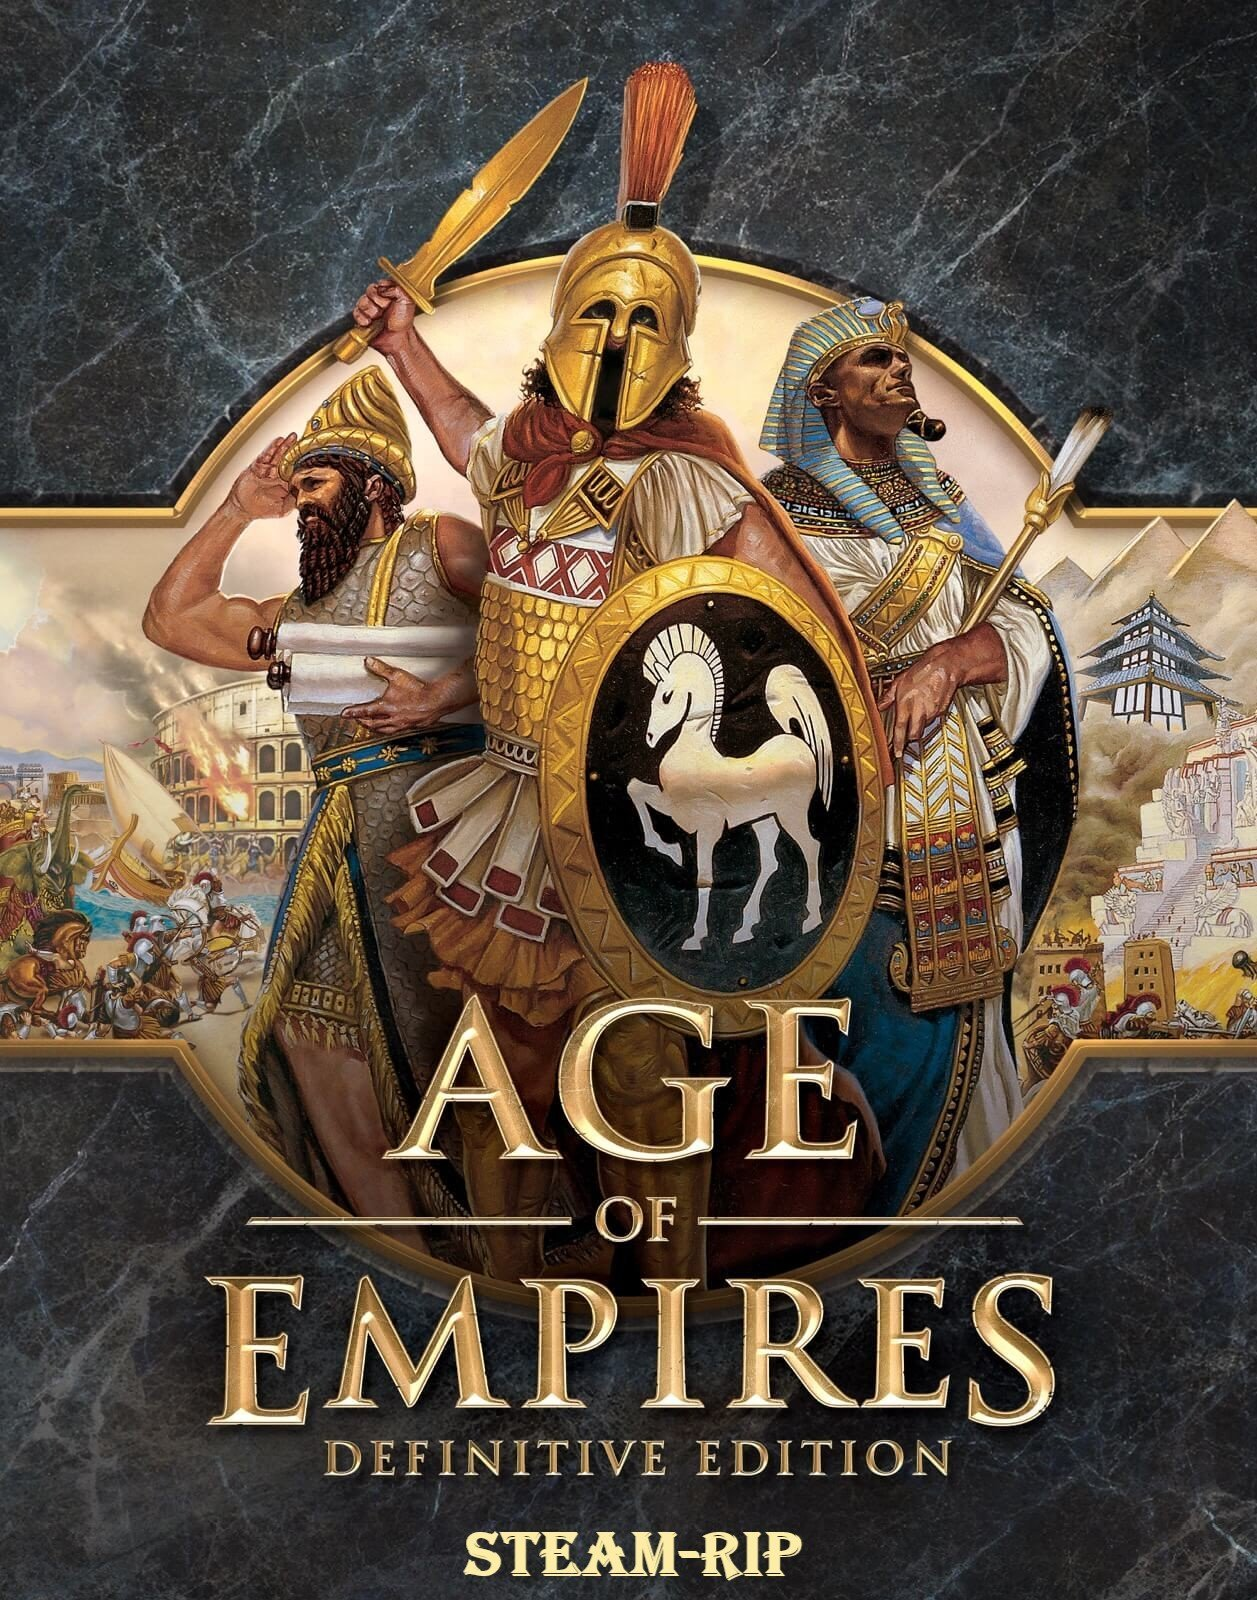 Age of Empires III: Definitive Edition [Steam-Rip] (2005-2020)